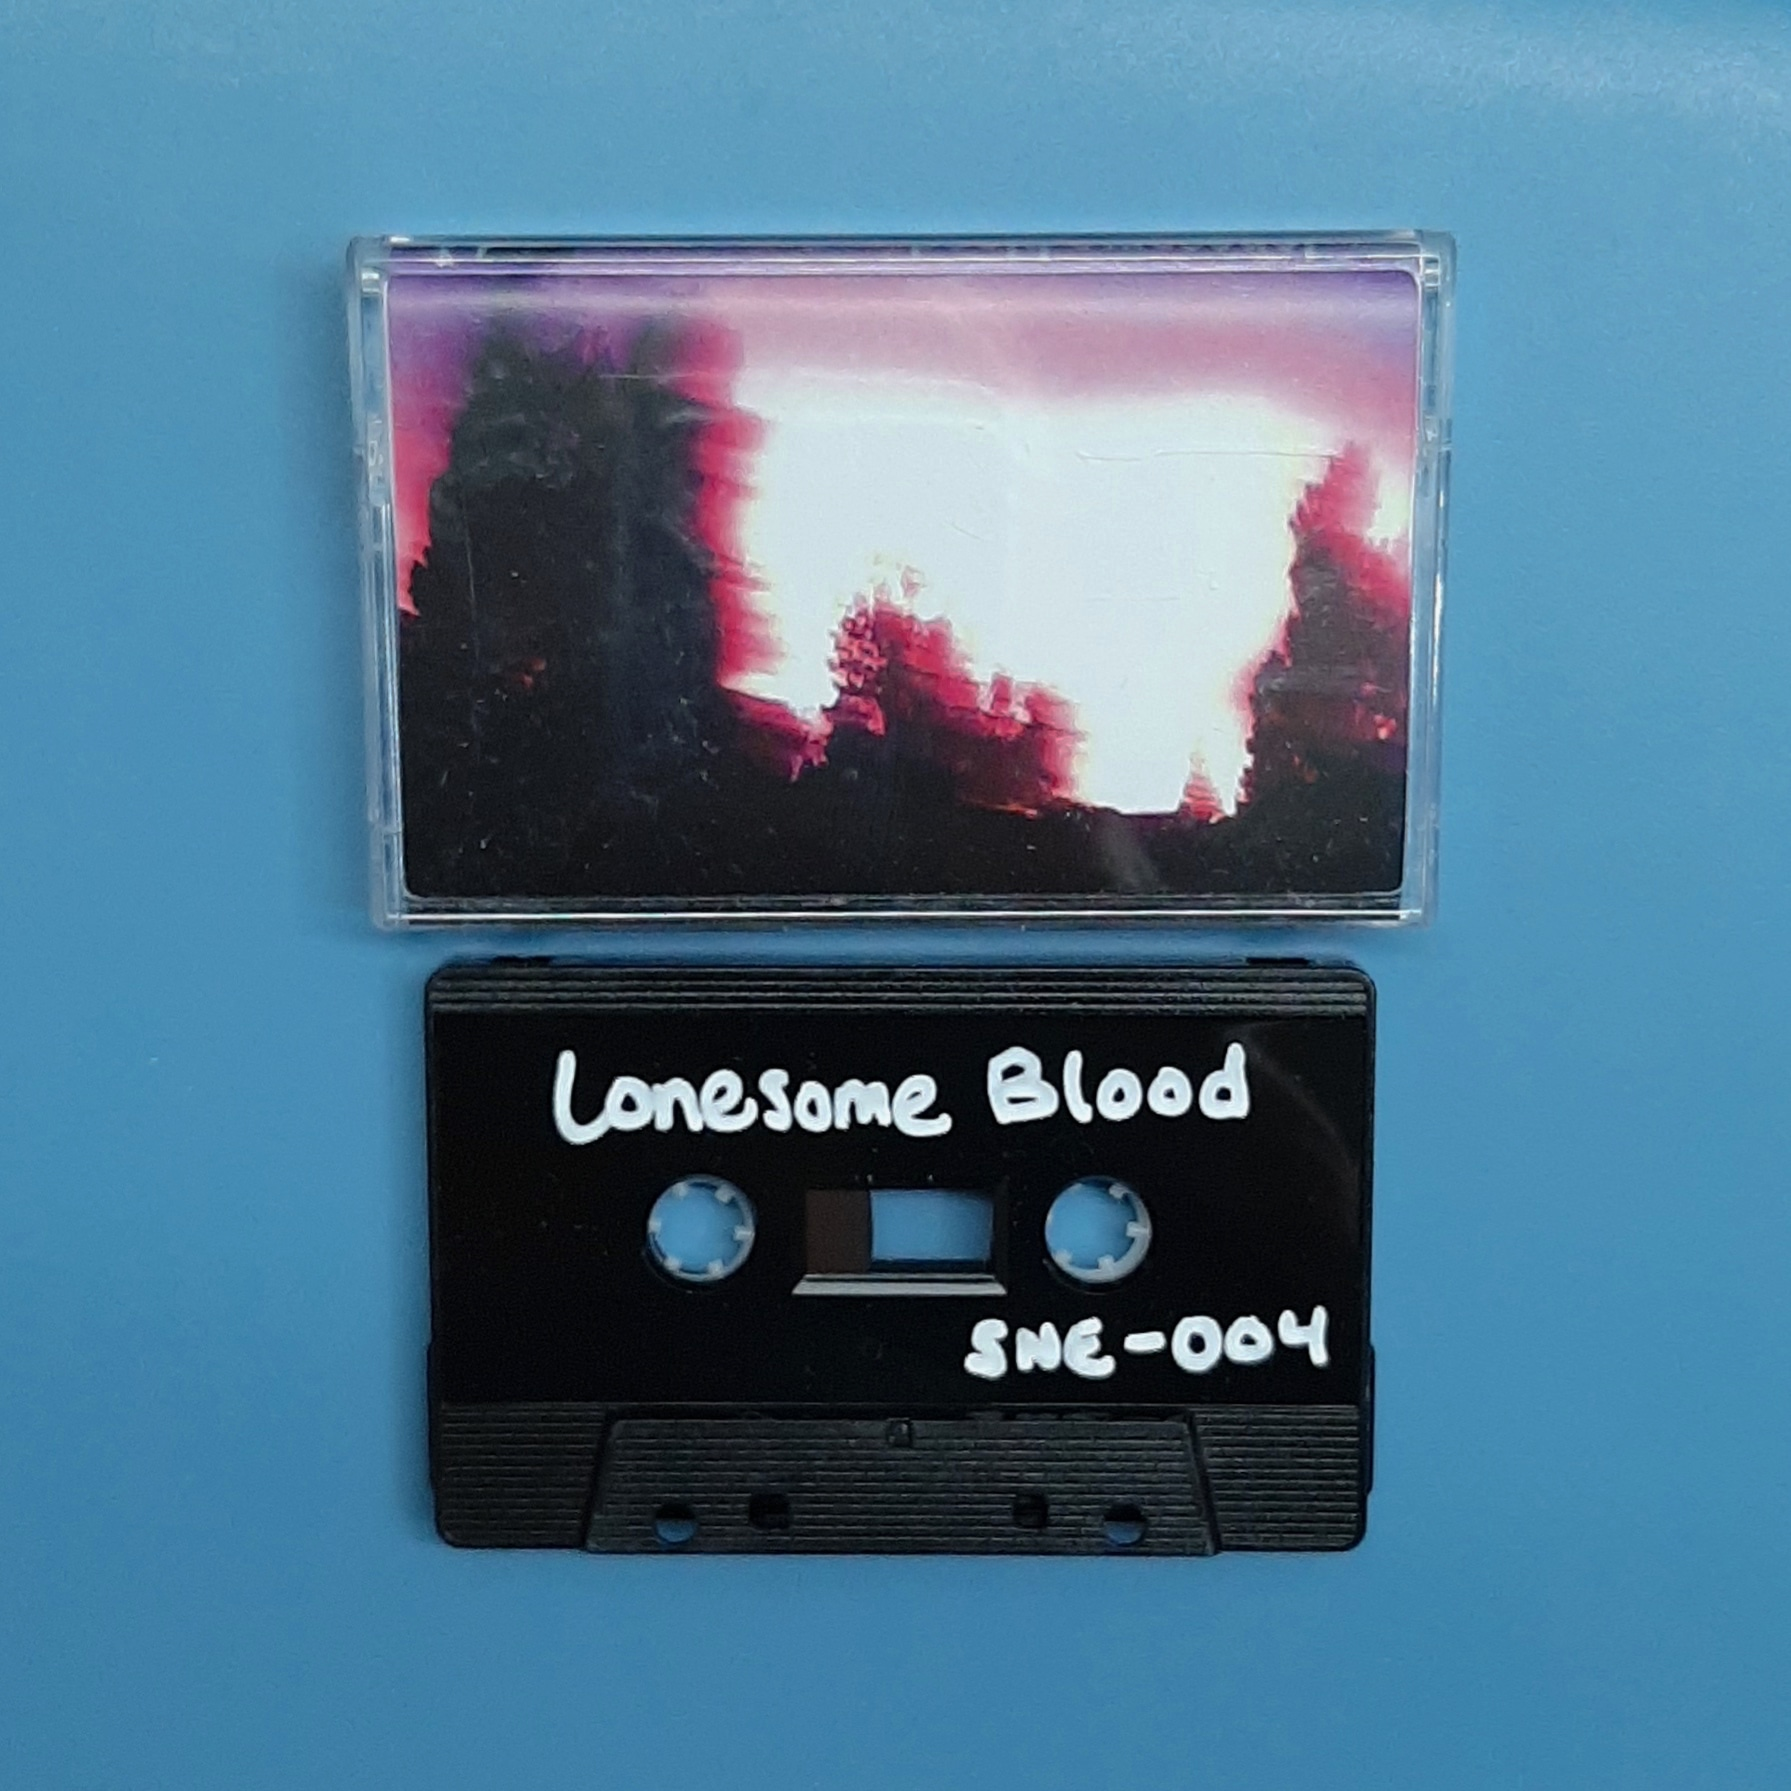 Lonesome Blood - Dusk Relief (Spare No Expanse)